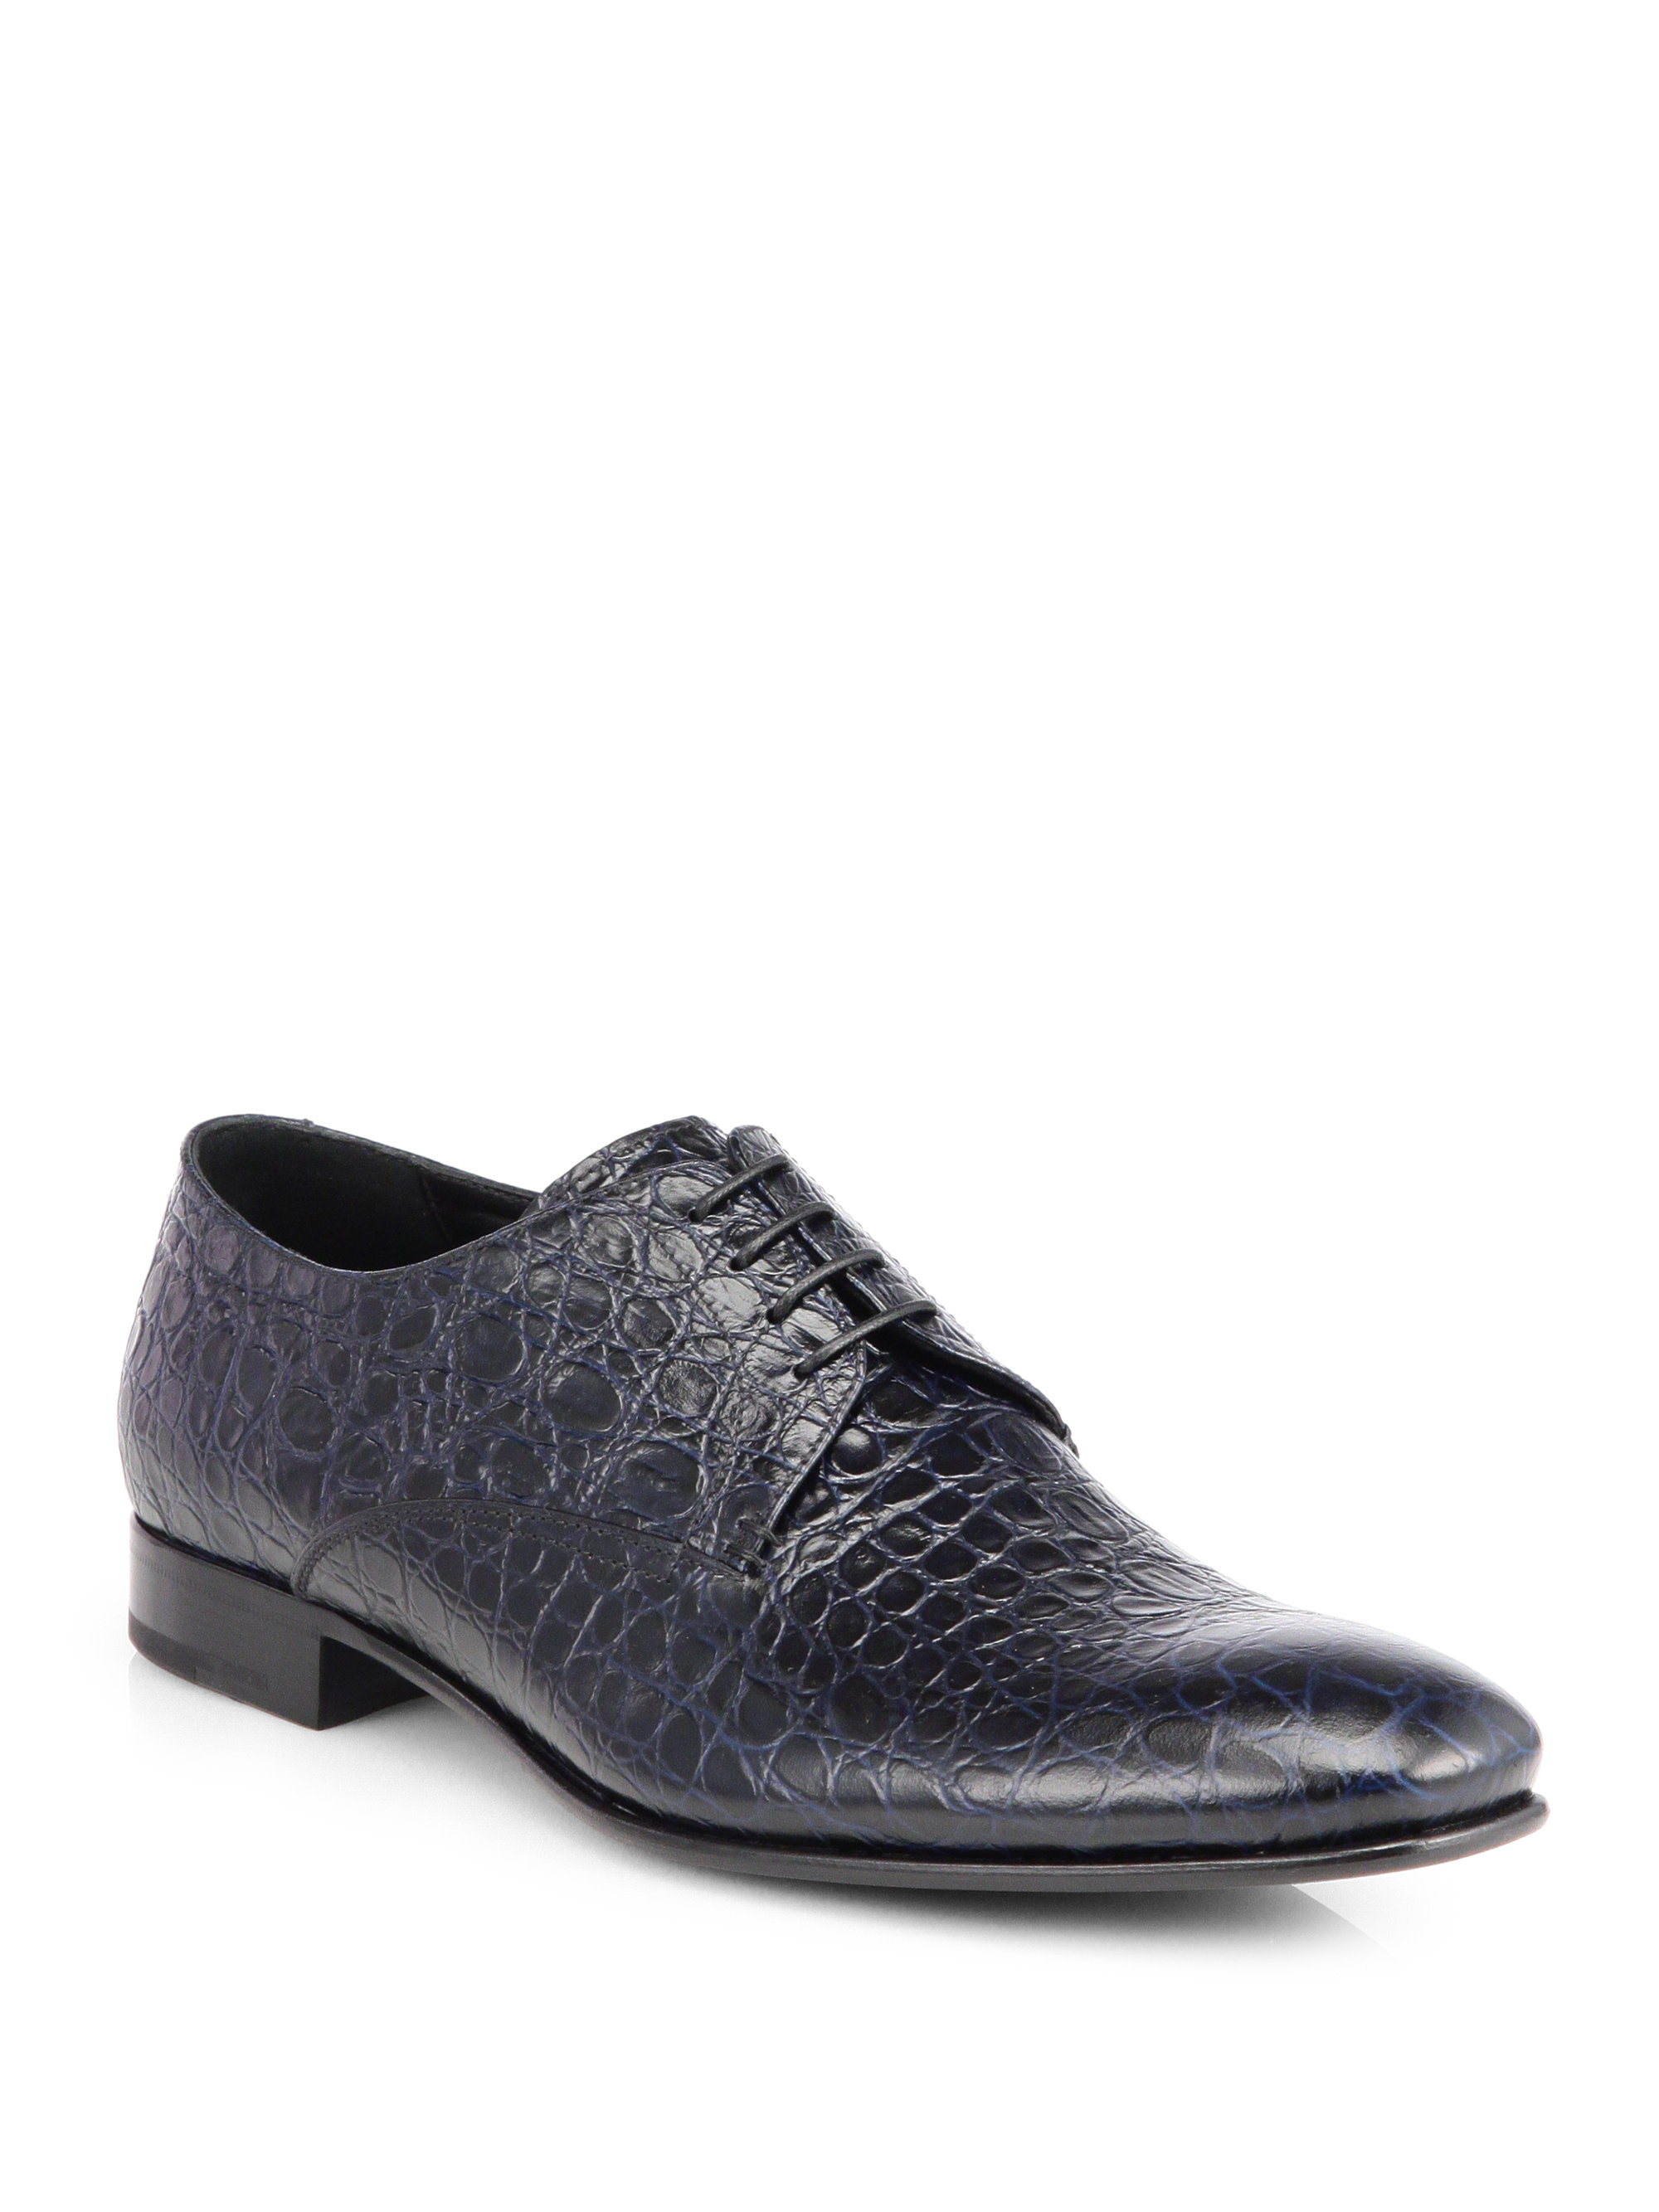 Giorgio Armani Embossed Leather Laceup Dress Shoes in Blue ...